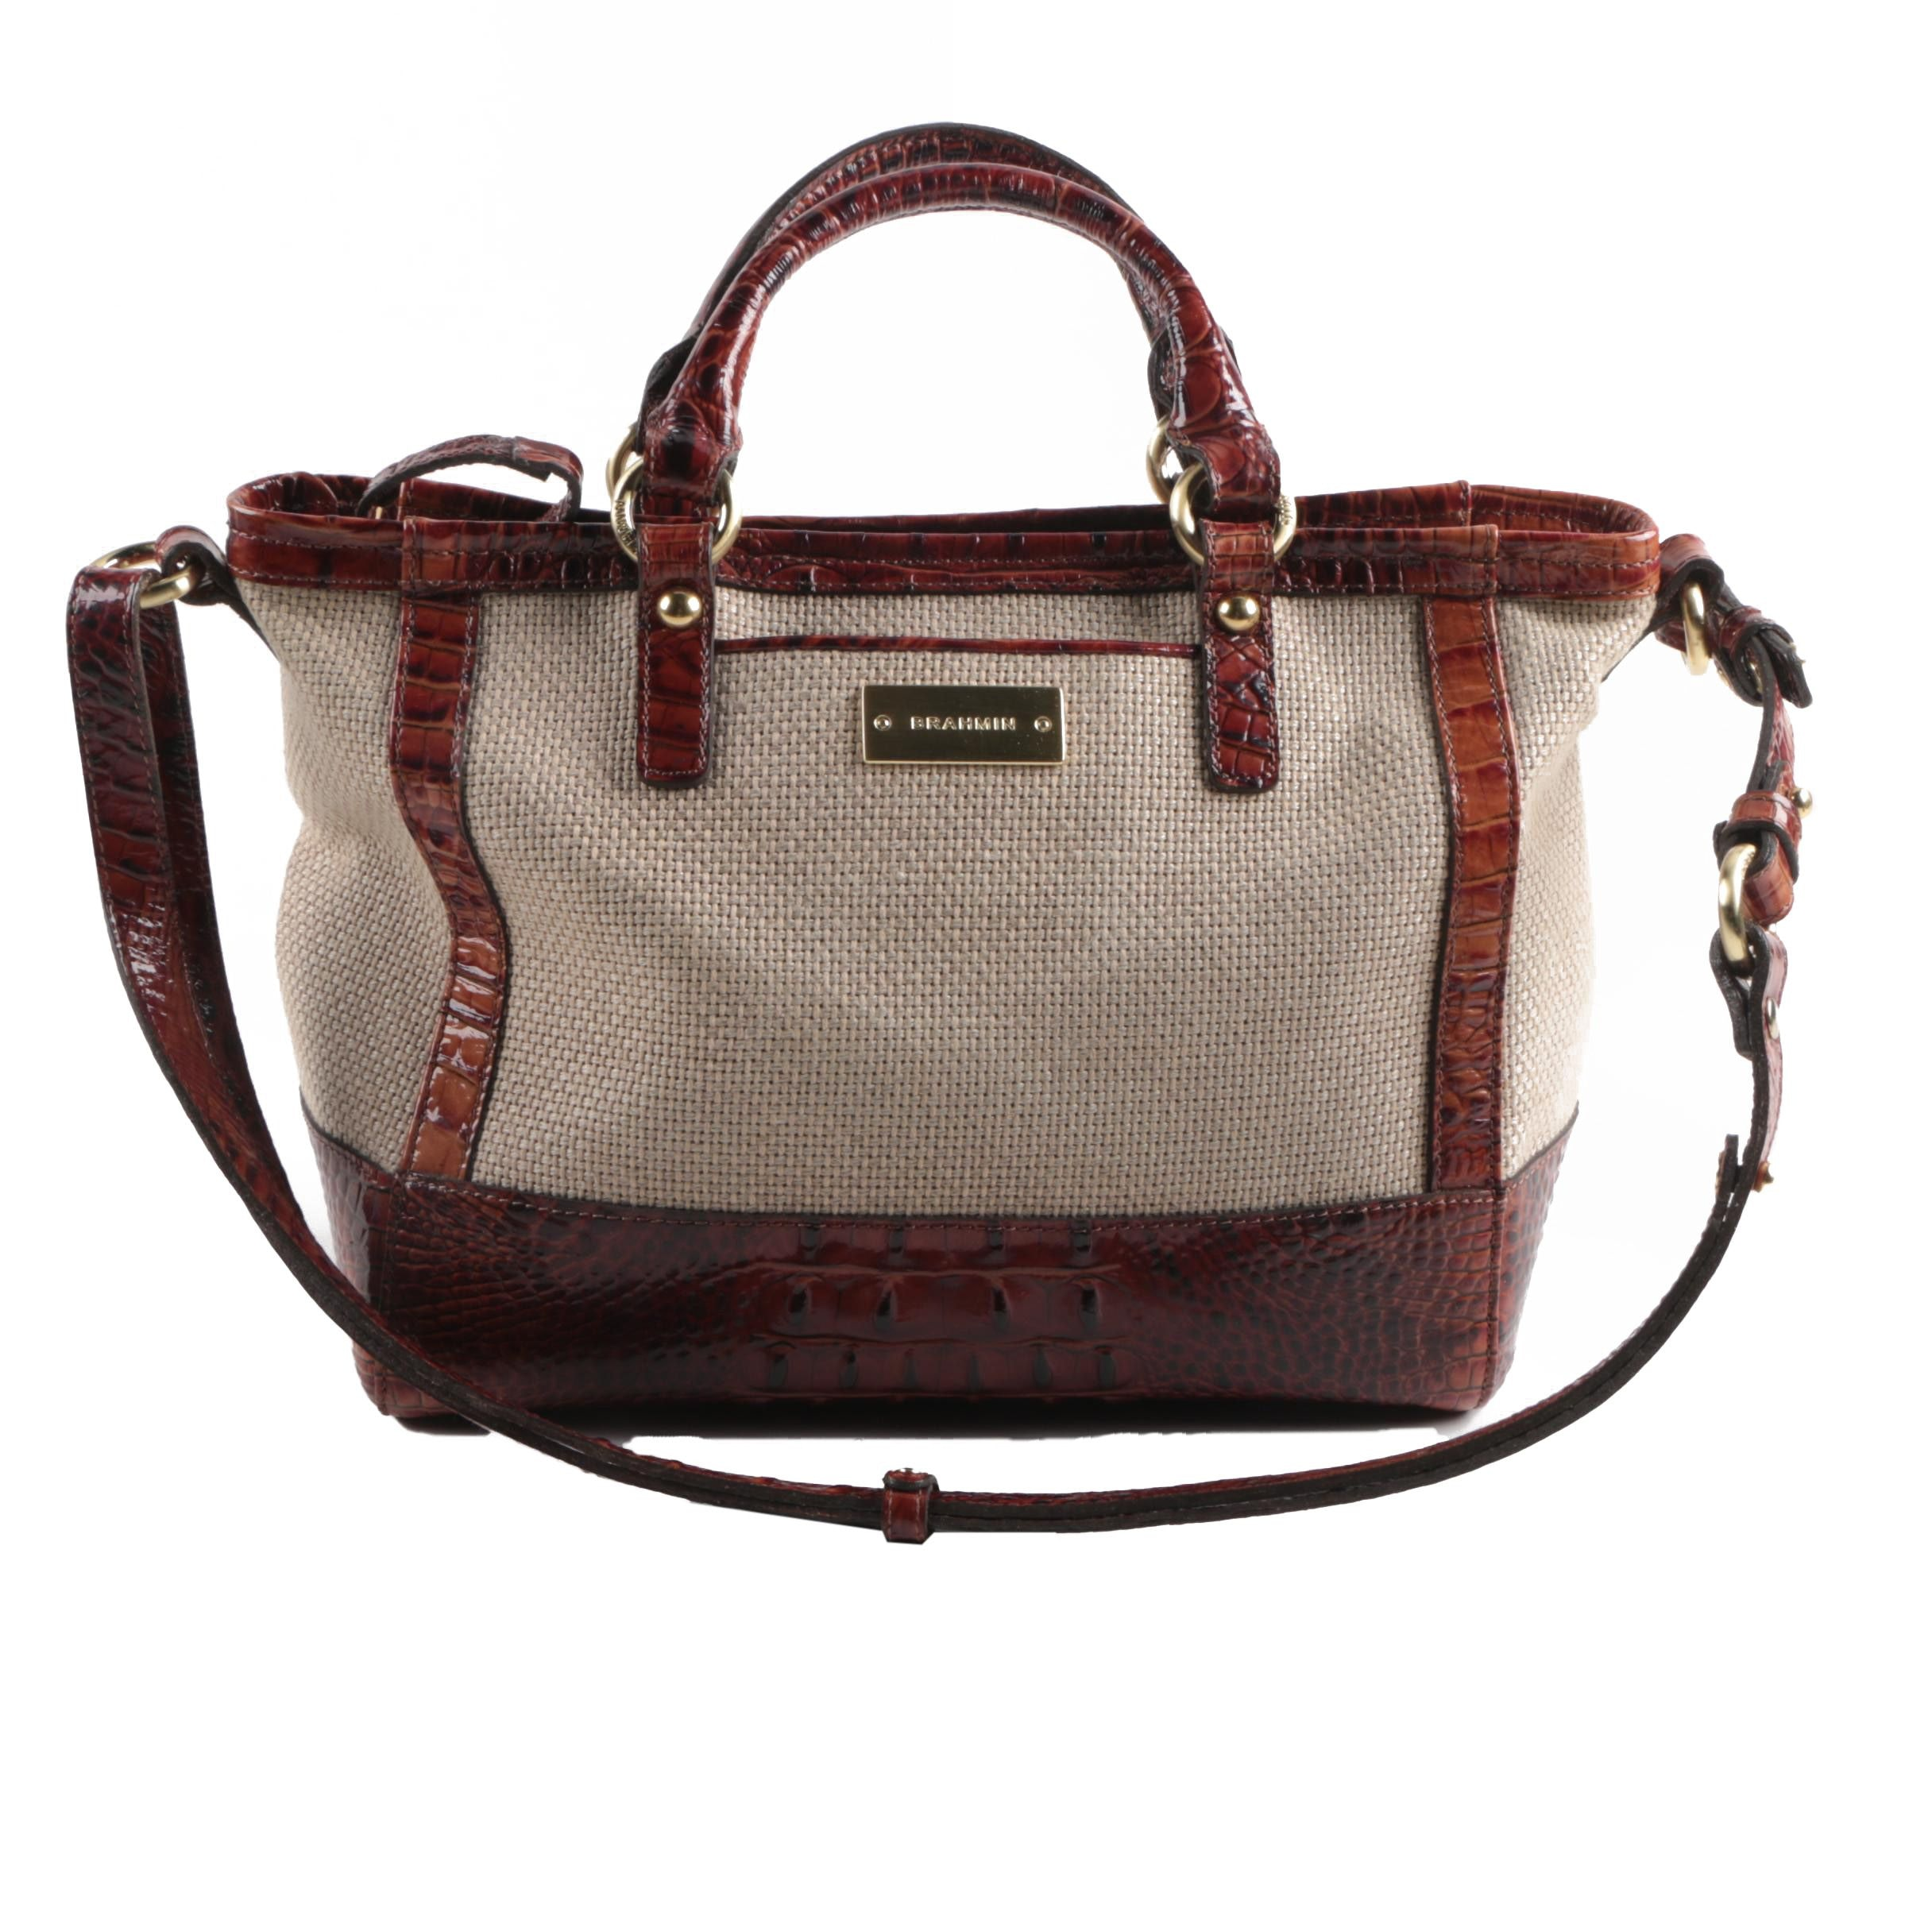 Brahmin Leather and Canvas Shoulder Bag